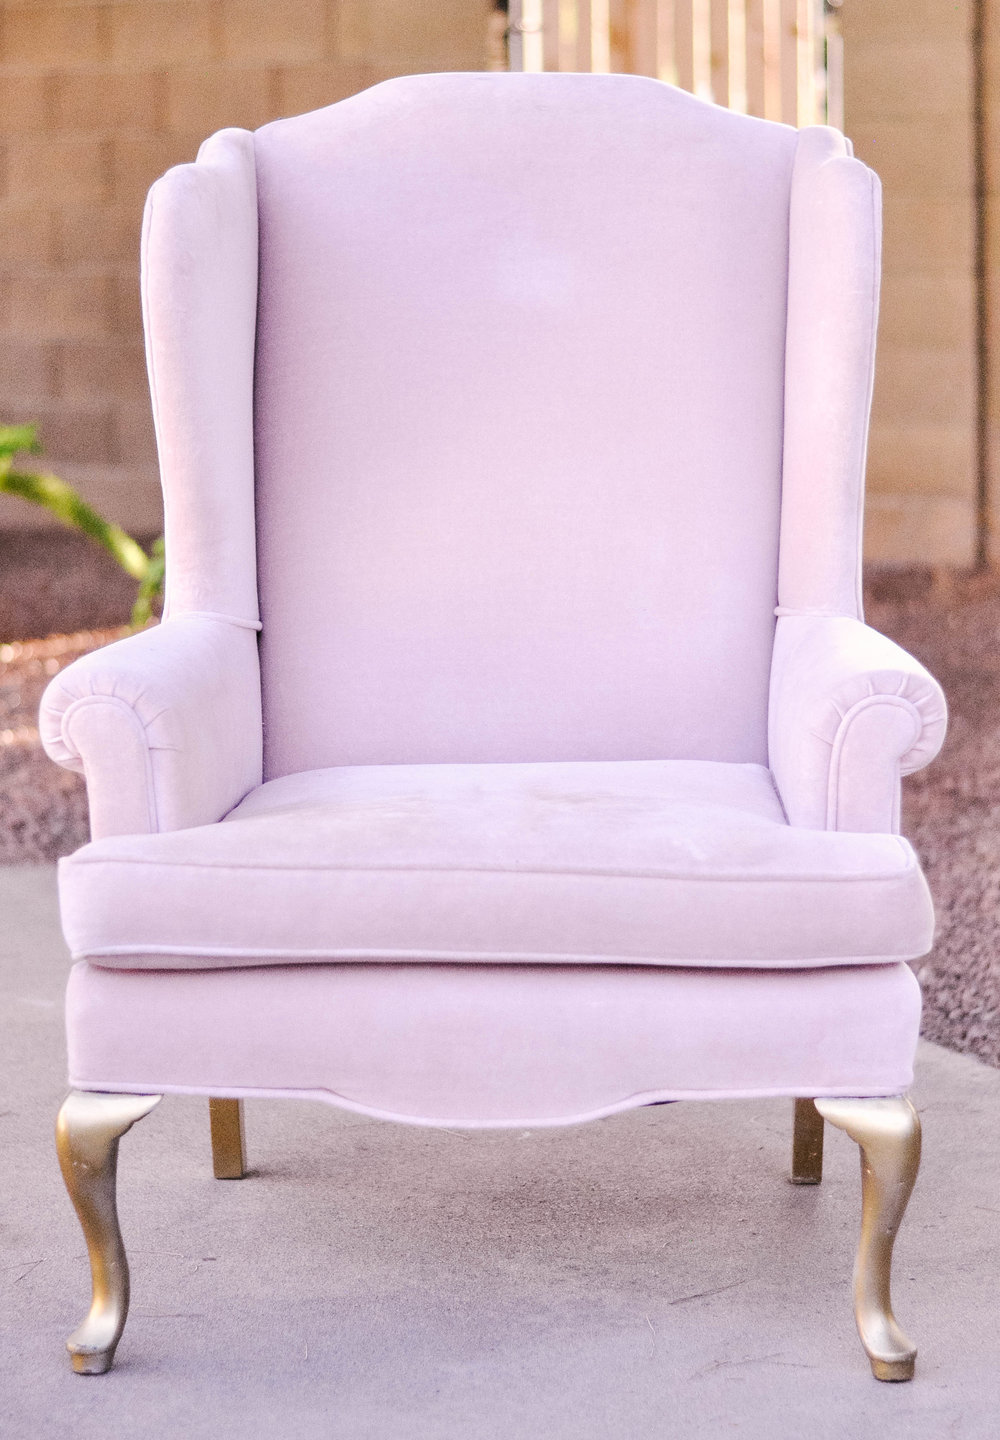 The Best Way to Reupholster a Chair